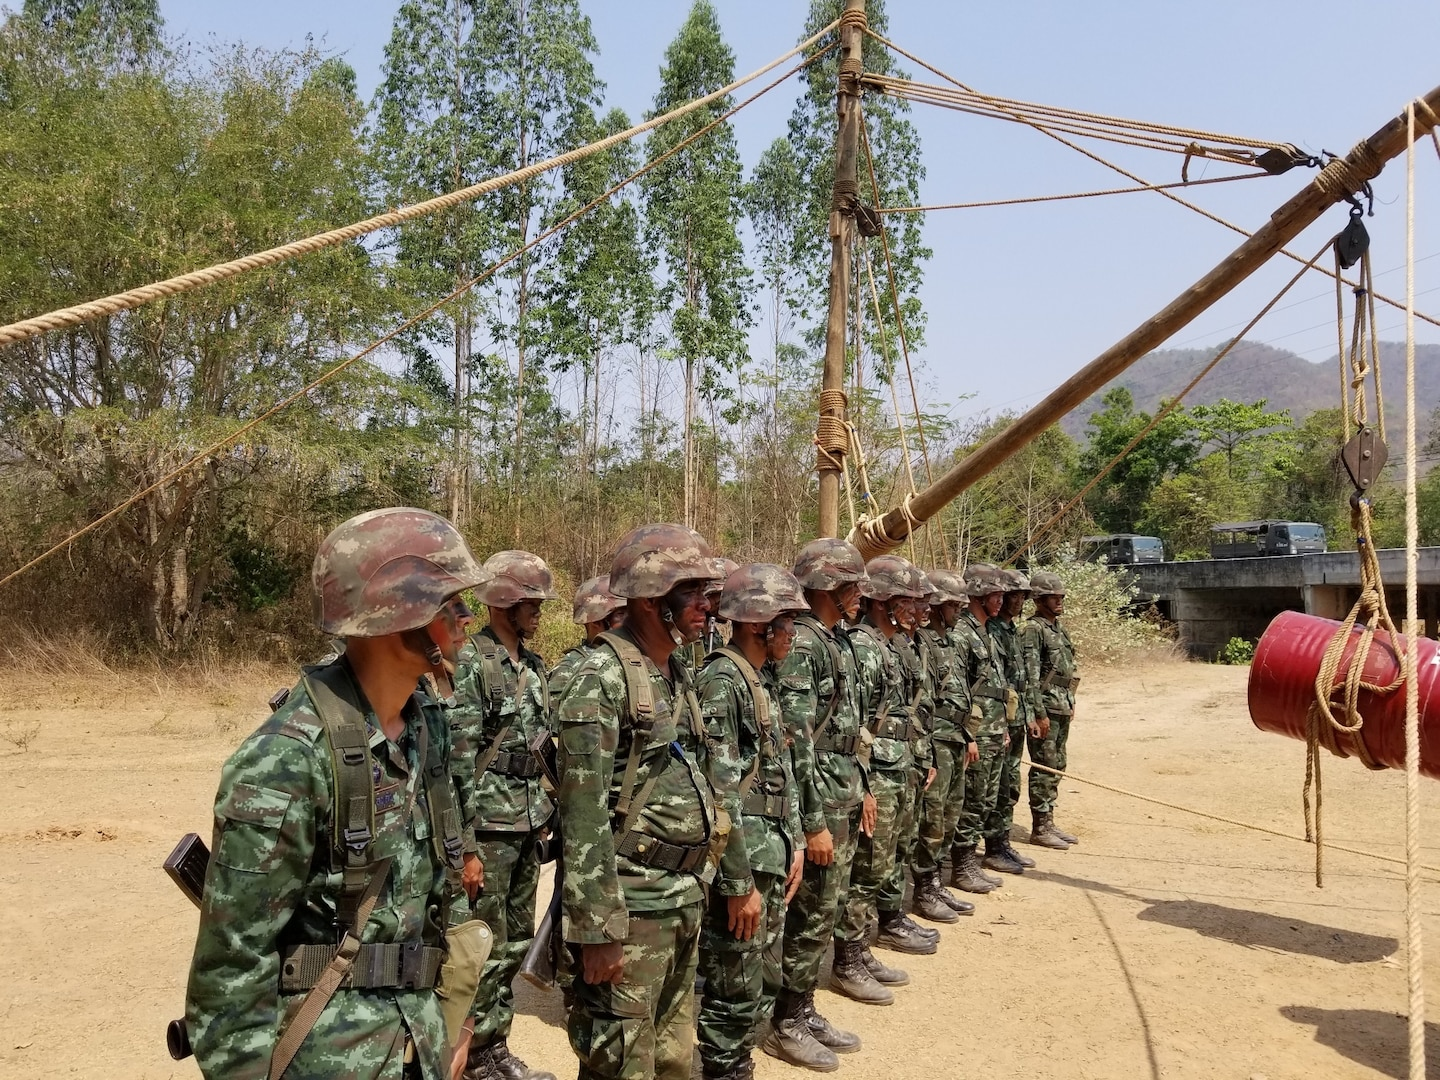 RATCHABURI, Thailand – Royal Thai Army engineers demonstrate field expedient heavy lift techniques to participants of the 2nd US-Thai Army Field Engineer Subject Matter Expert Exchange, which included Washington Army National Guard Soldiers and a representative from U.S. Army Pacific/U.S. Army Corps of Engineers, held at the Royal Thai Army Engineer School, March 18-22, 2019. (Courtesy photo: Royal Thai Army engineer photographer)